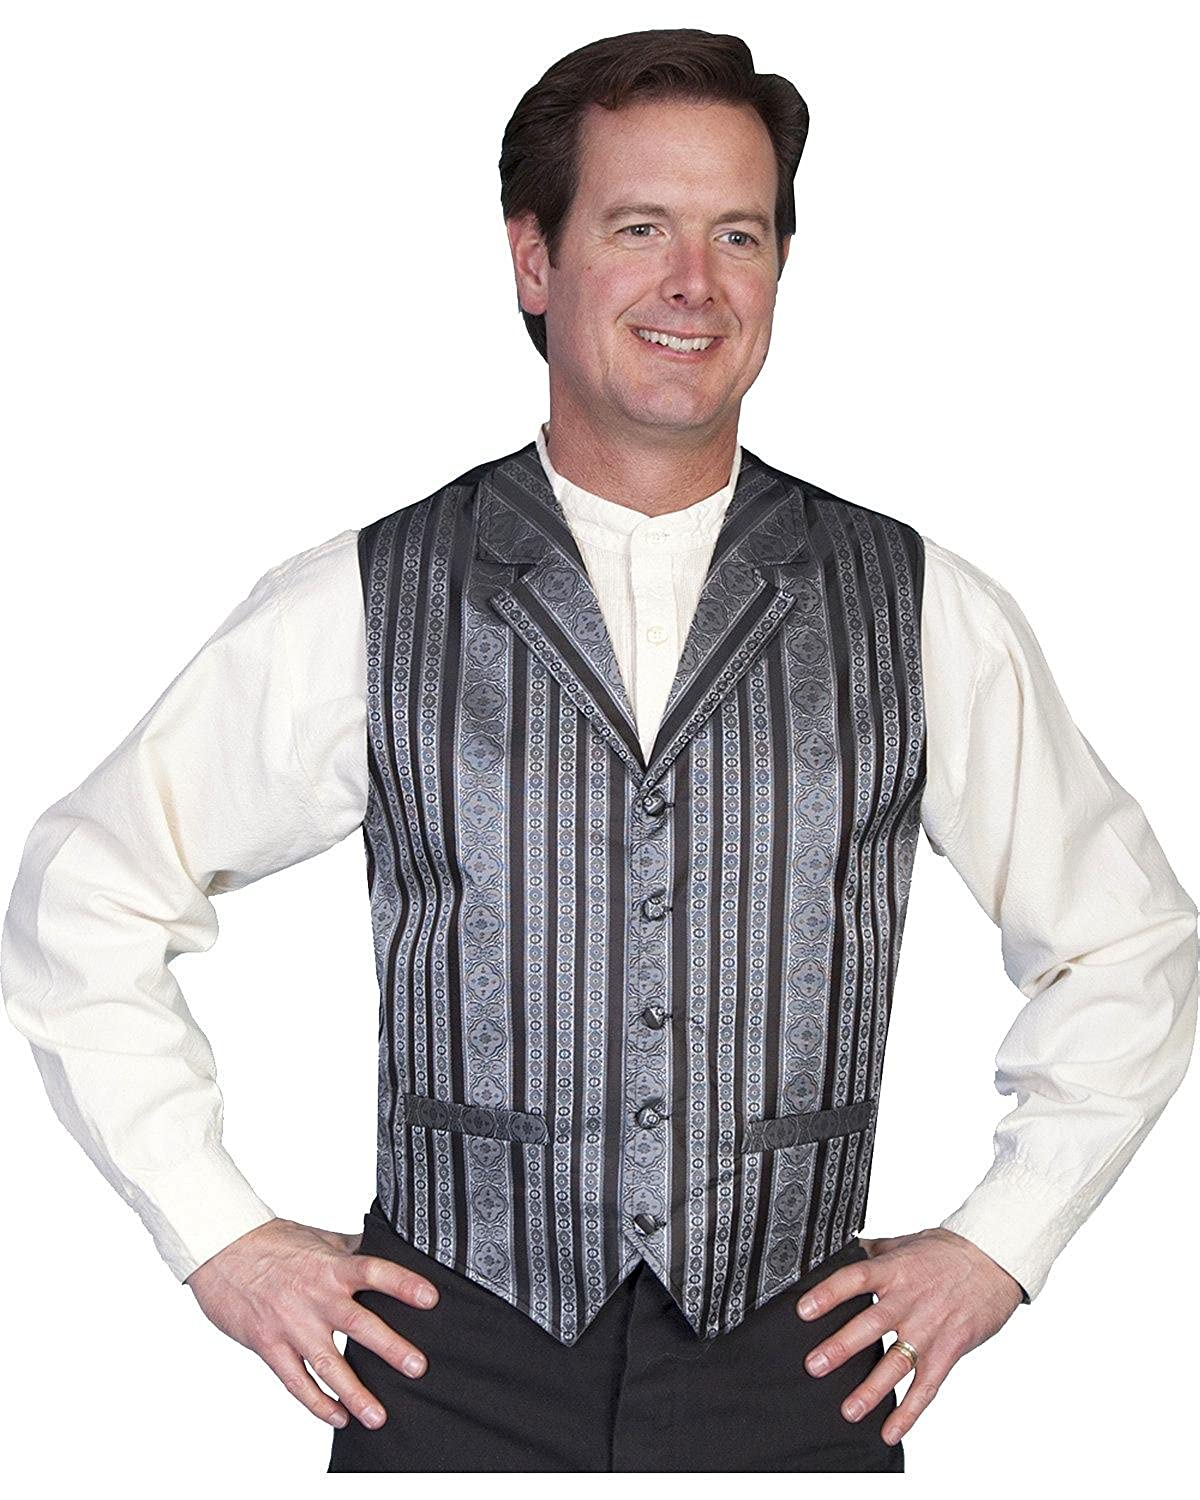 Men's Steampunk Vests, Waistcoats, Corsets Rangewear By Scully Mens Rangewear Waverly Vest Big And Tall - Rw167x Blk $64.00 AT vintagedancer.com